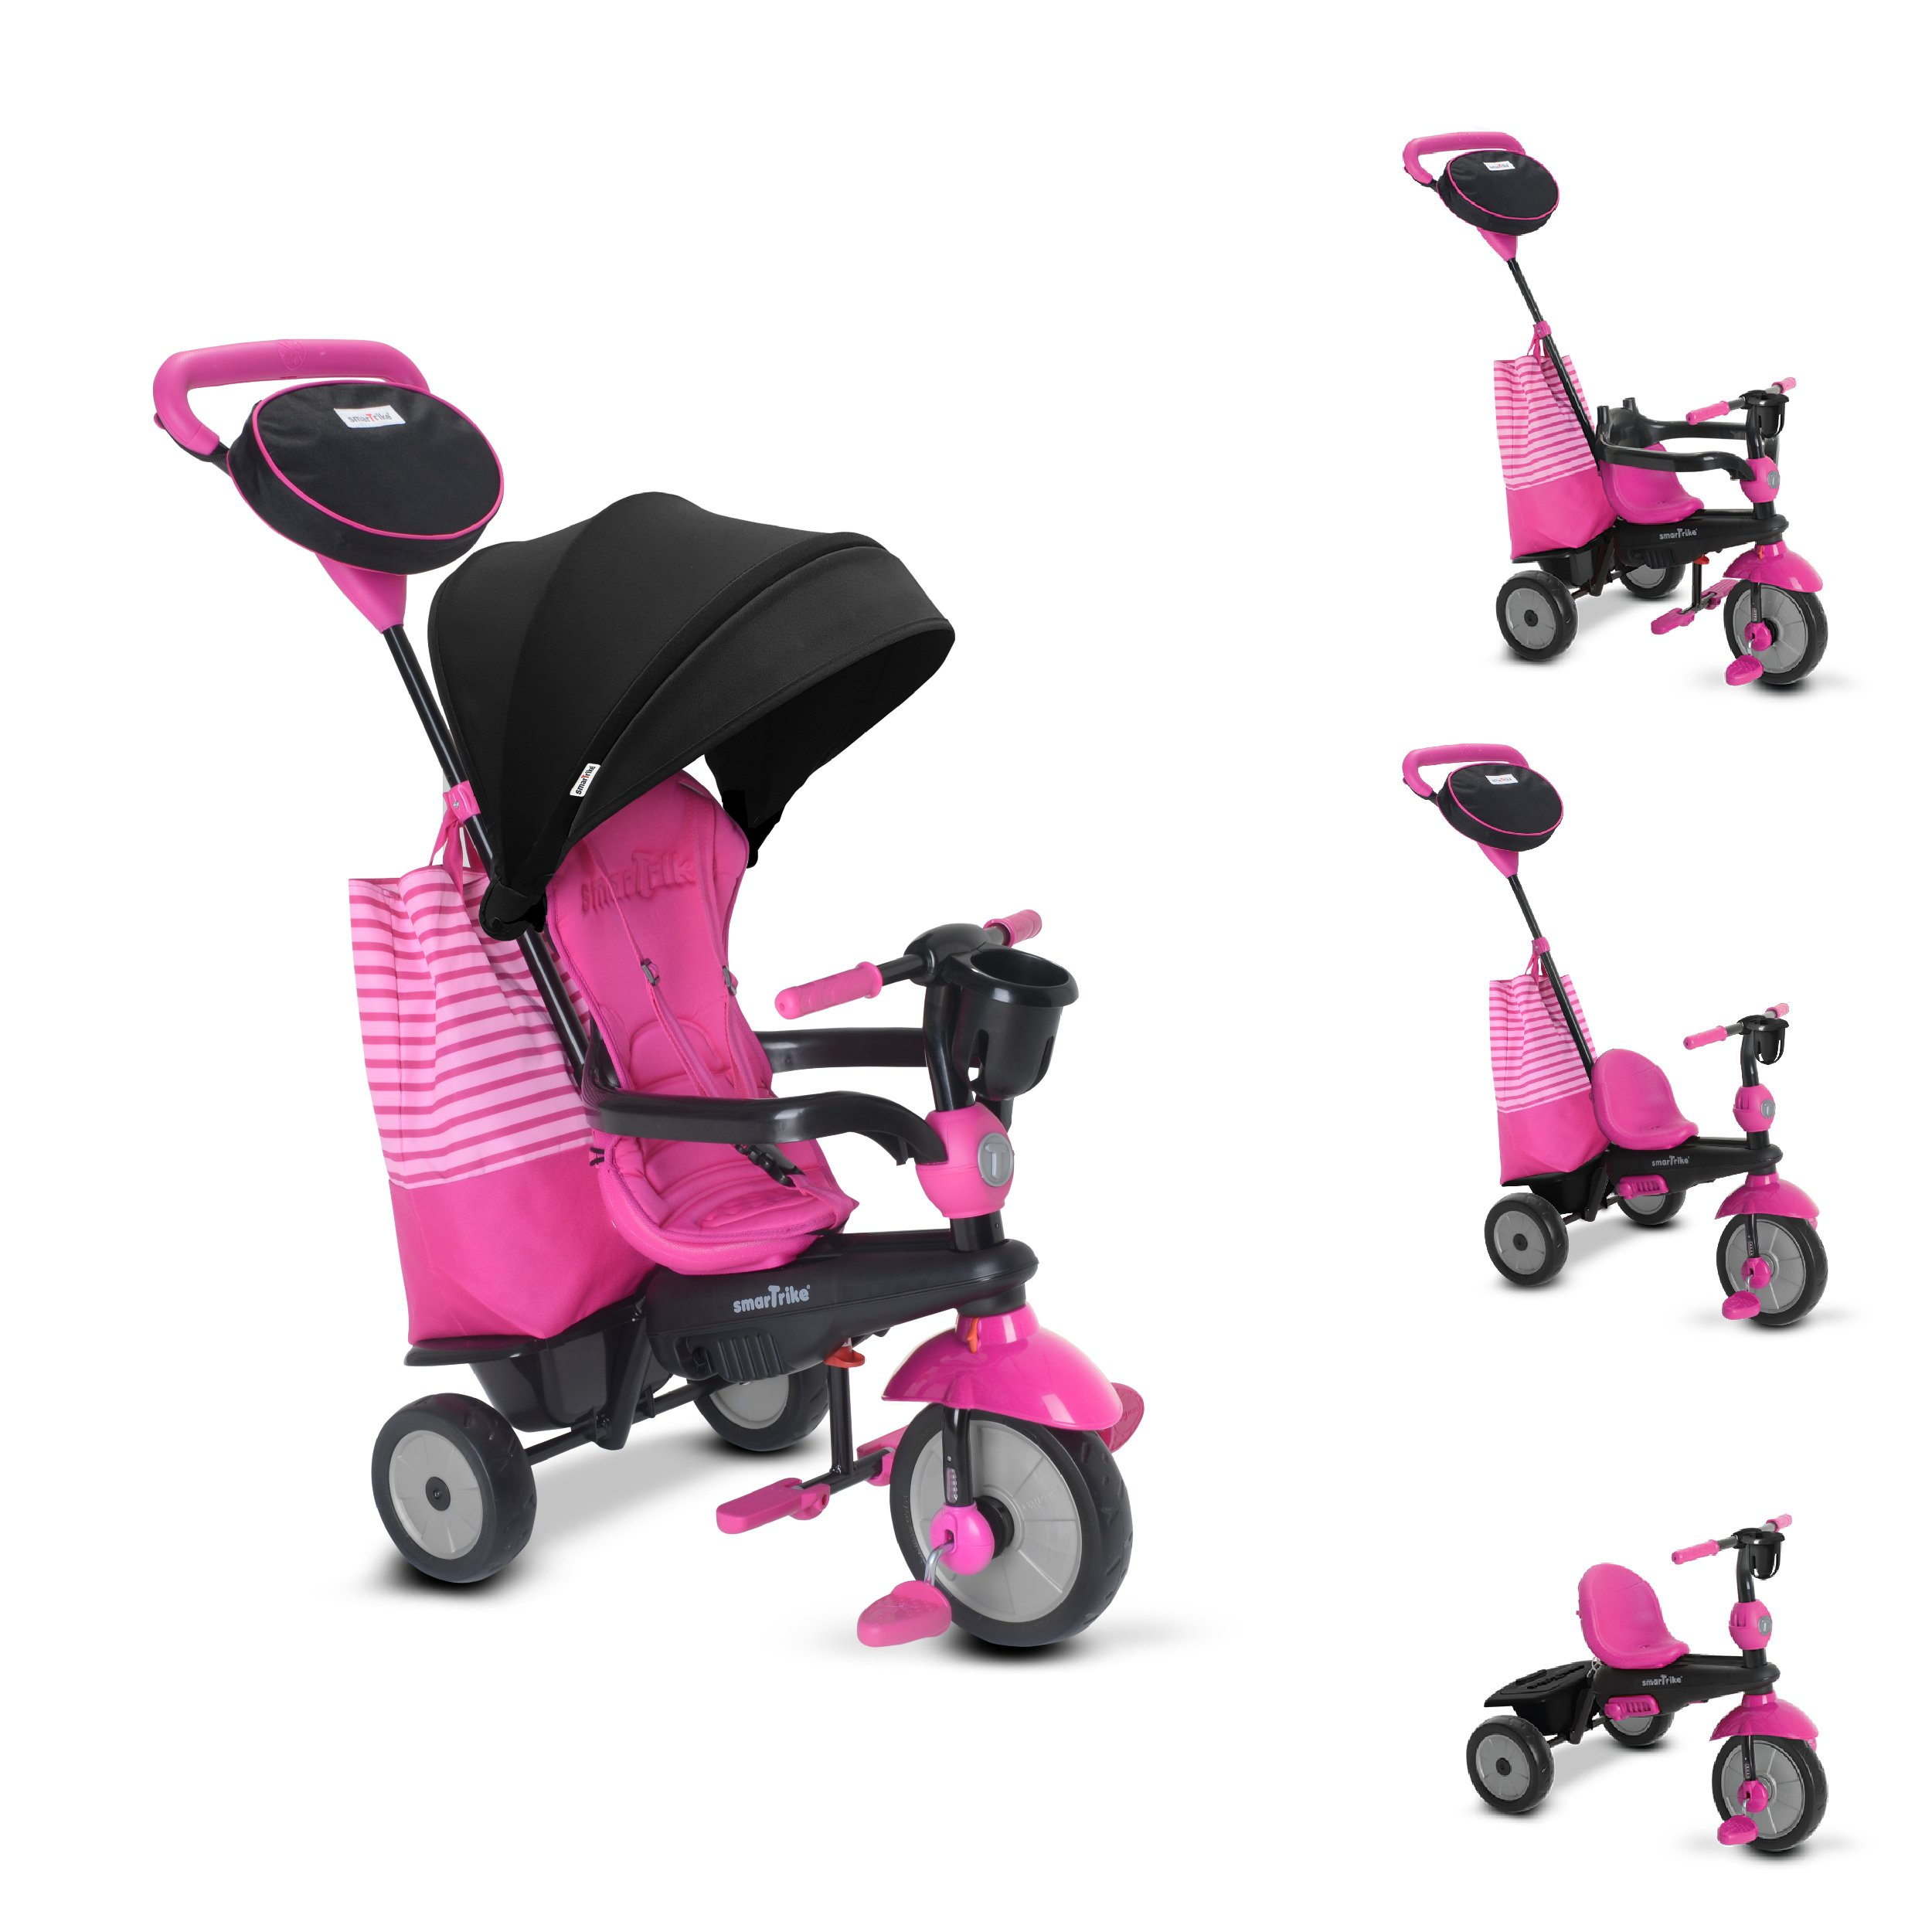 smarTrike Swing Dlx Children's Tricycle, Pink